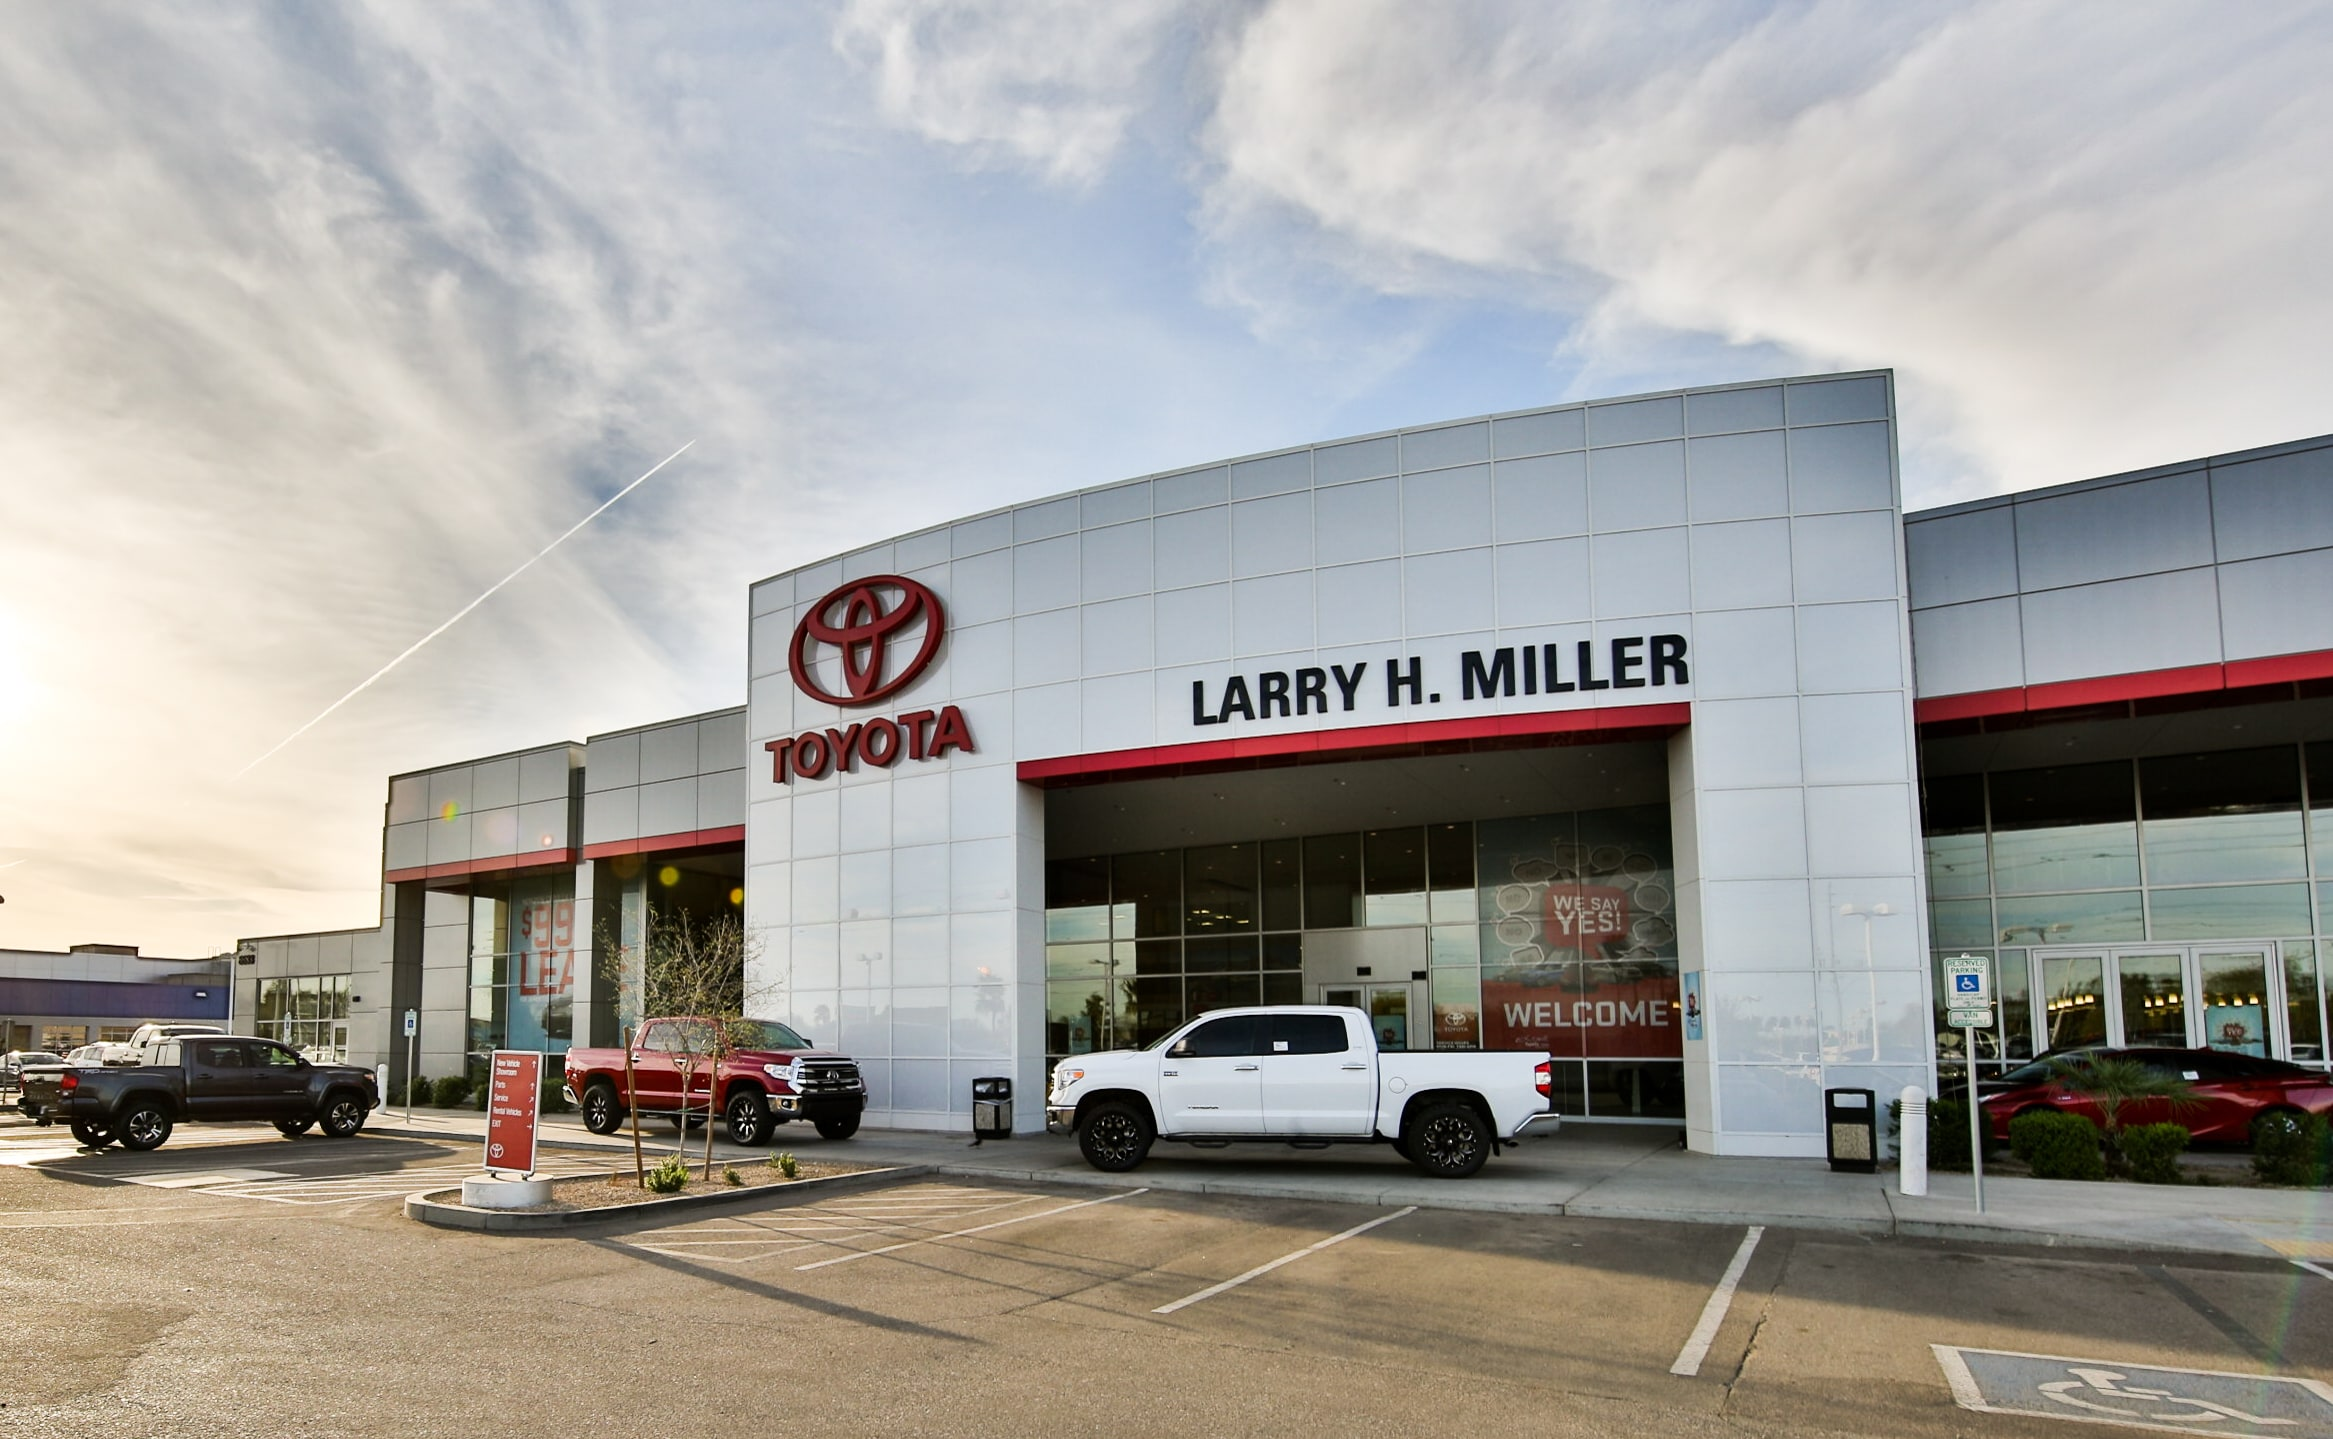 Larry H. Miller Toyota Peoria Gains National Notoriety